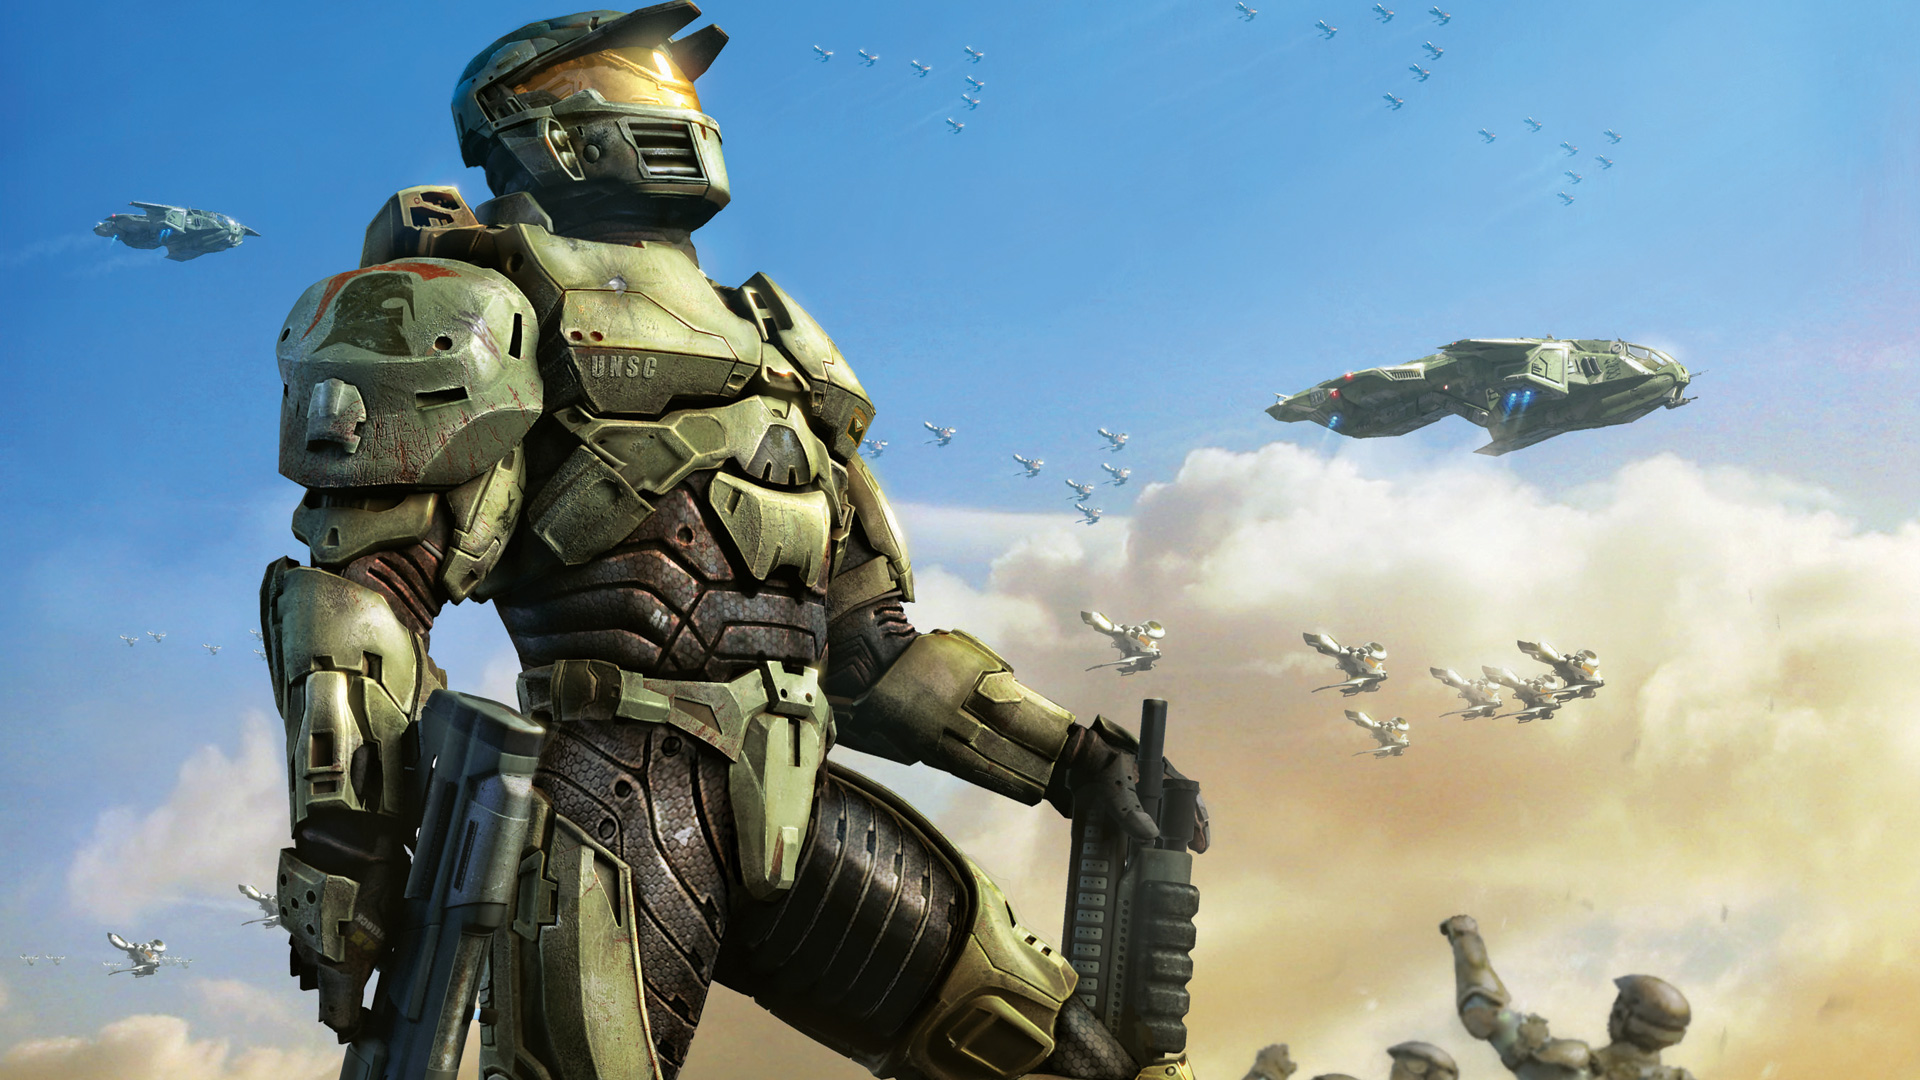 Halo Wars Wallpaper in 1920x1080